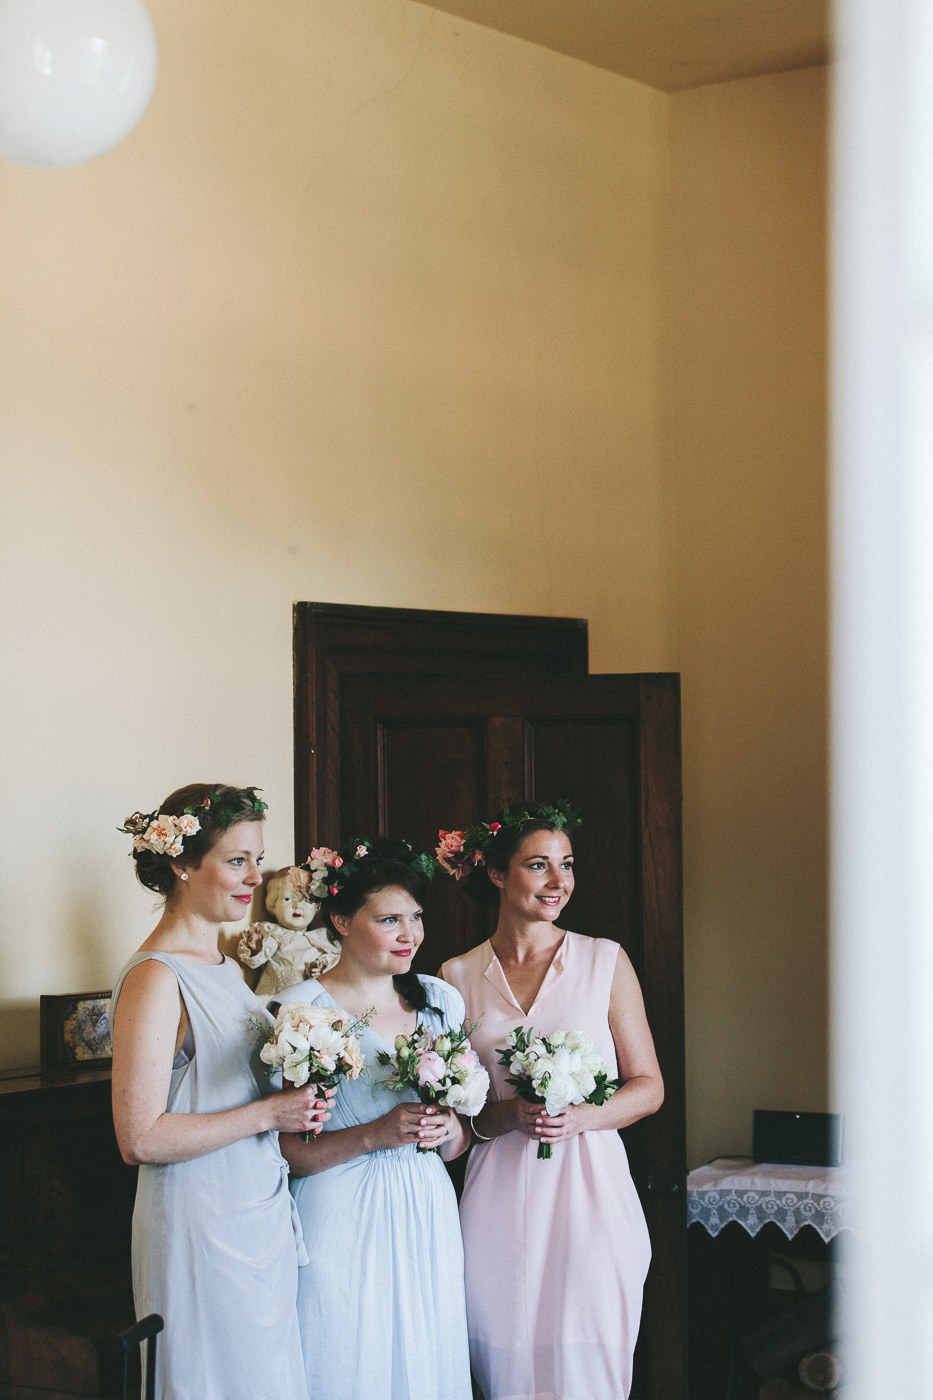 Bridesmaids with bouquets and floral crowns